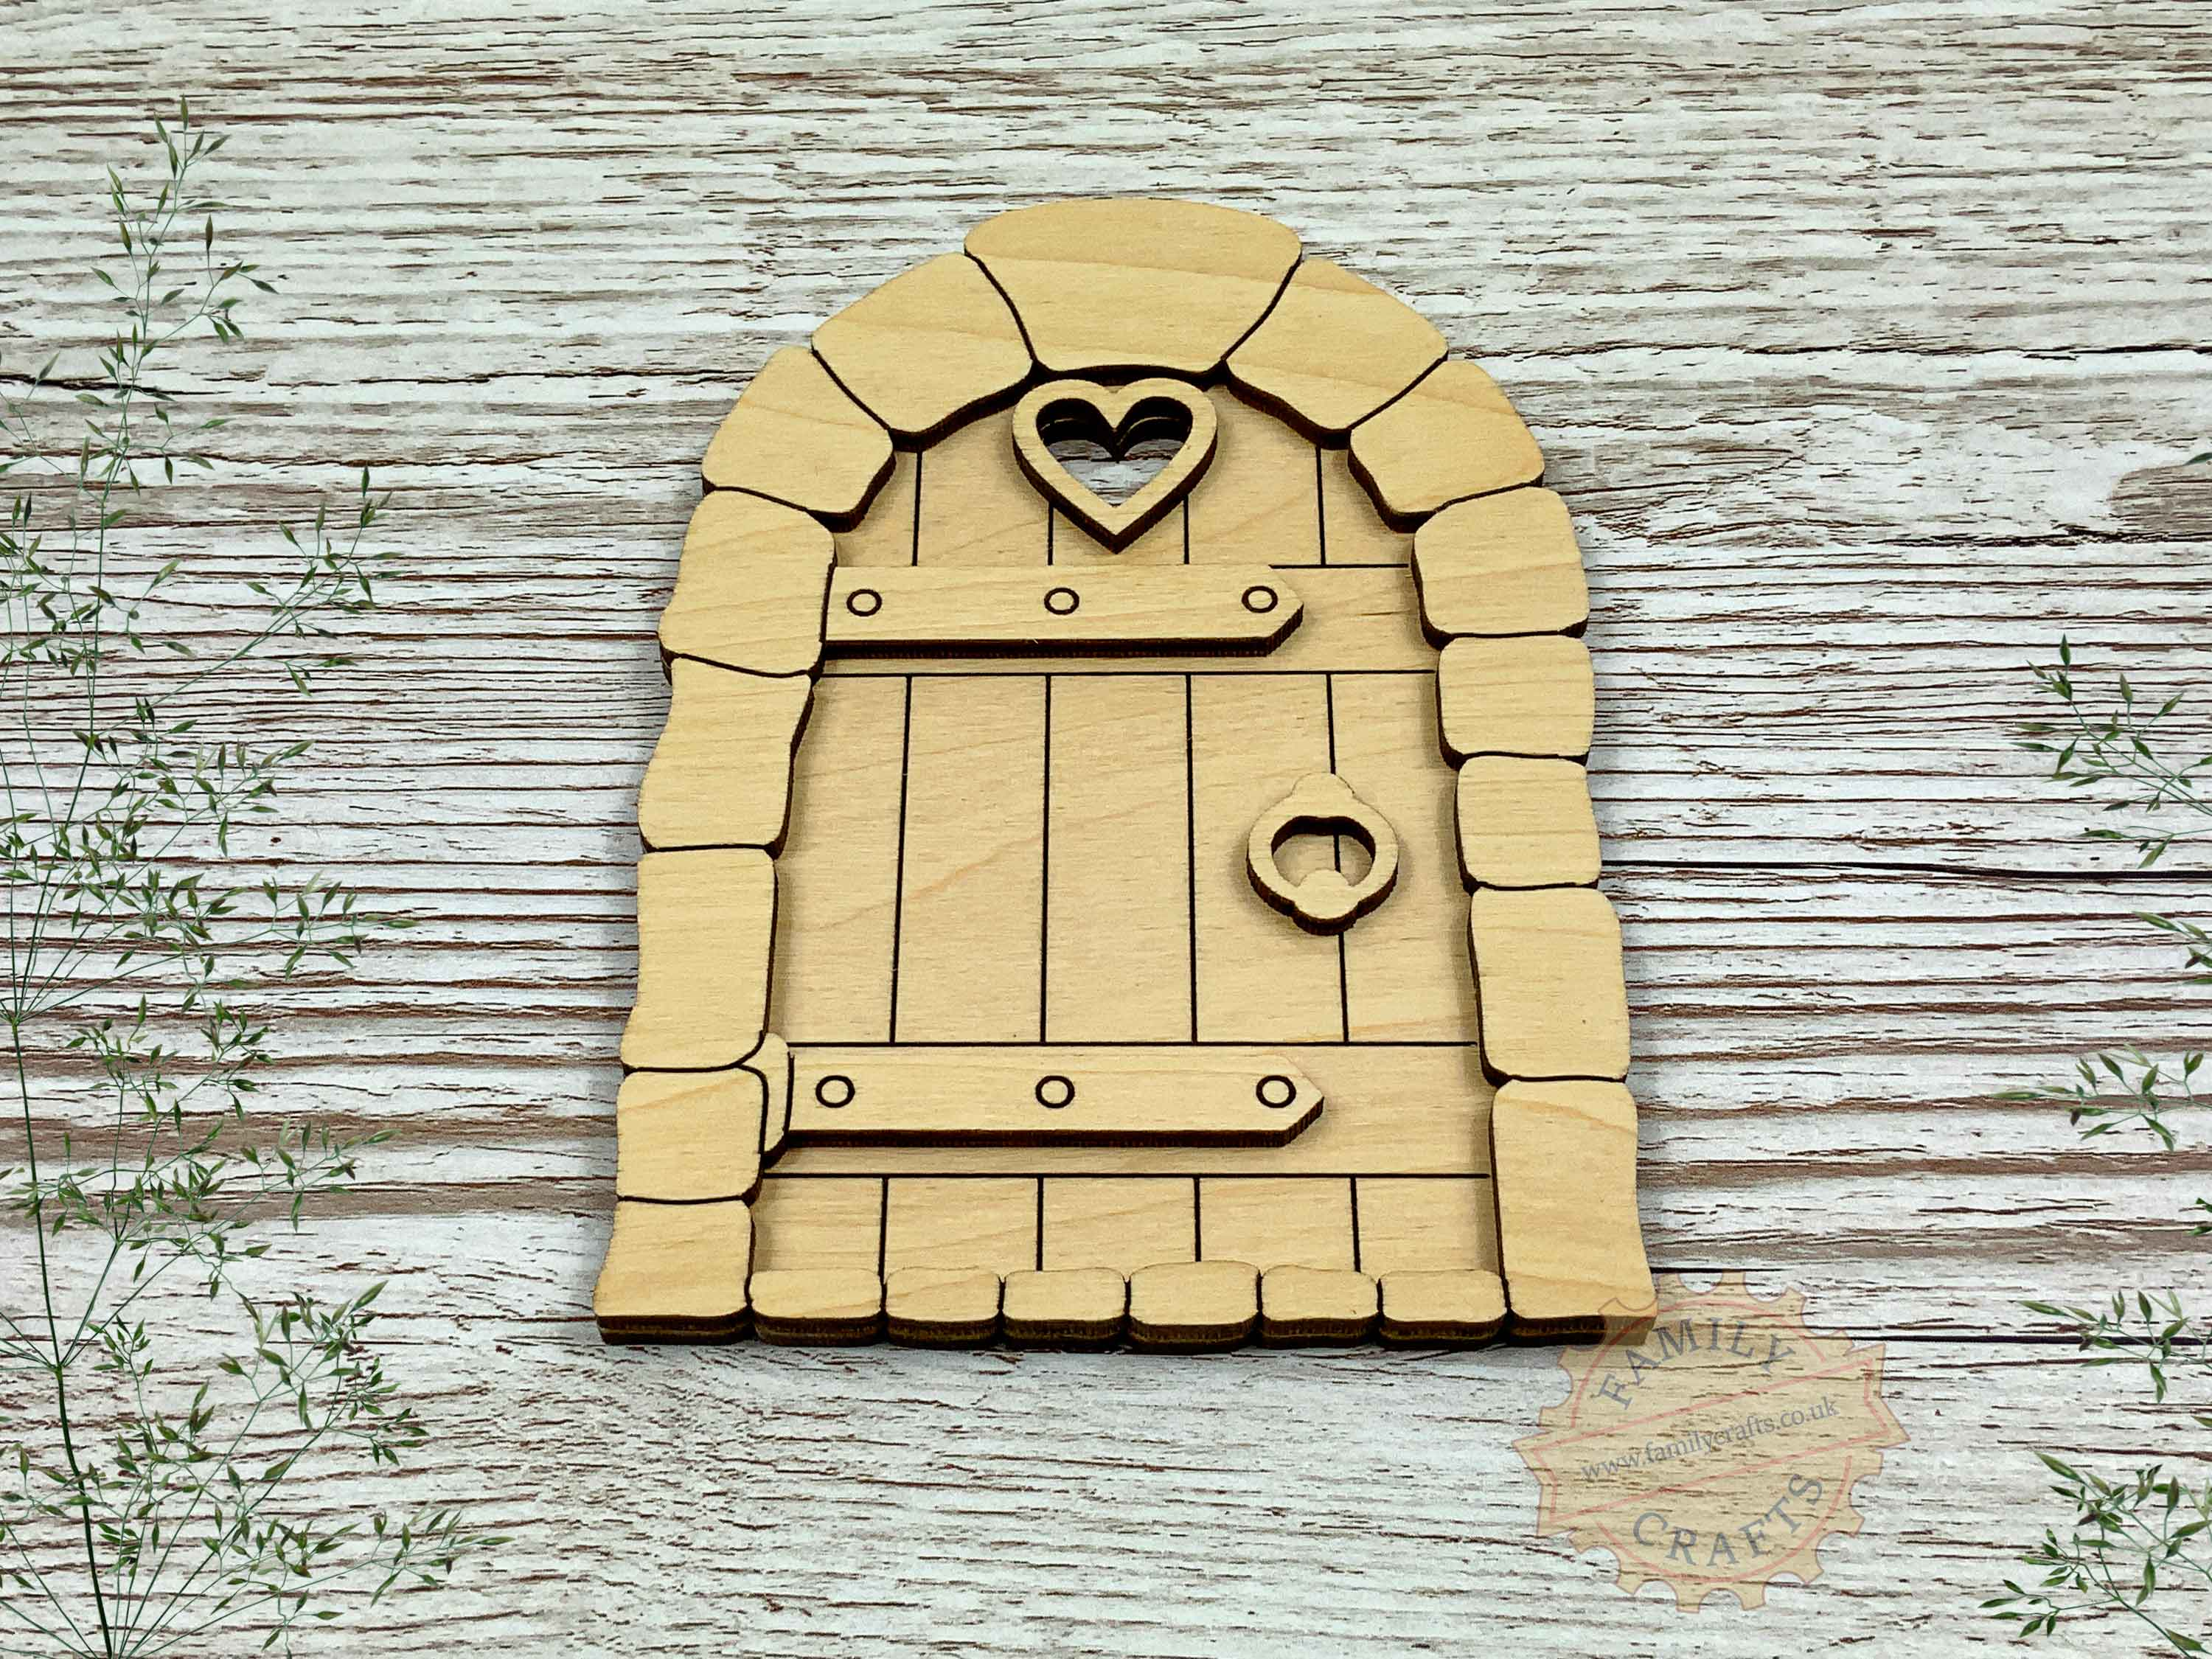 plywood cobblestone fairy door kit view front